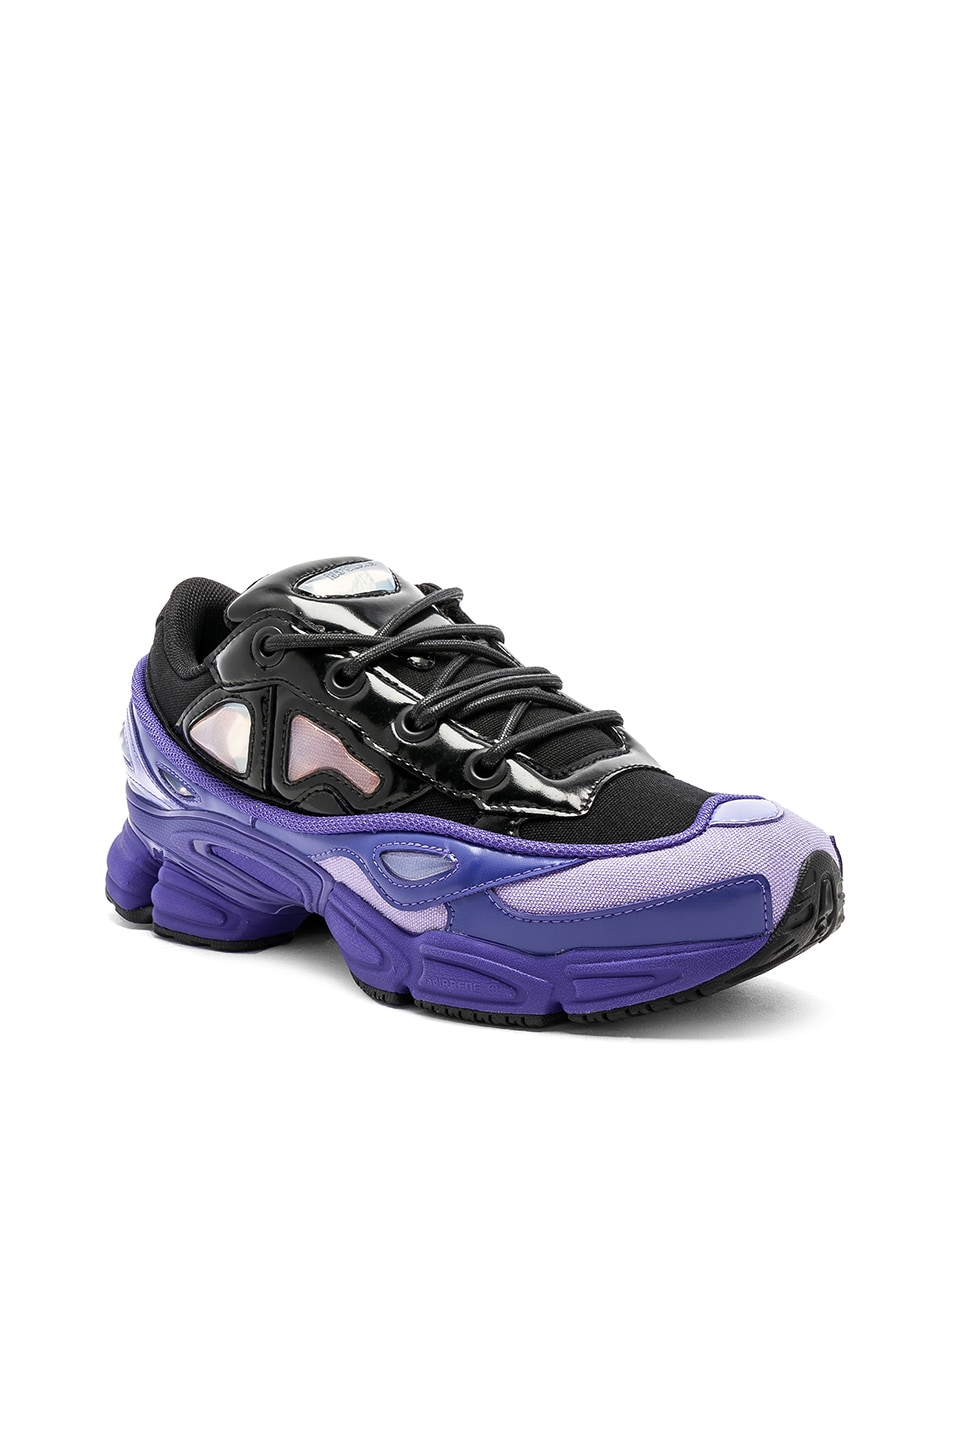 best authentic 3c9b7 87f43 Image 1 of adidas by Raf Simons Ozweego III in Light Purple  Purple  Core